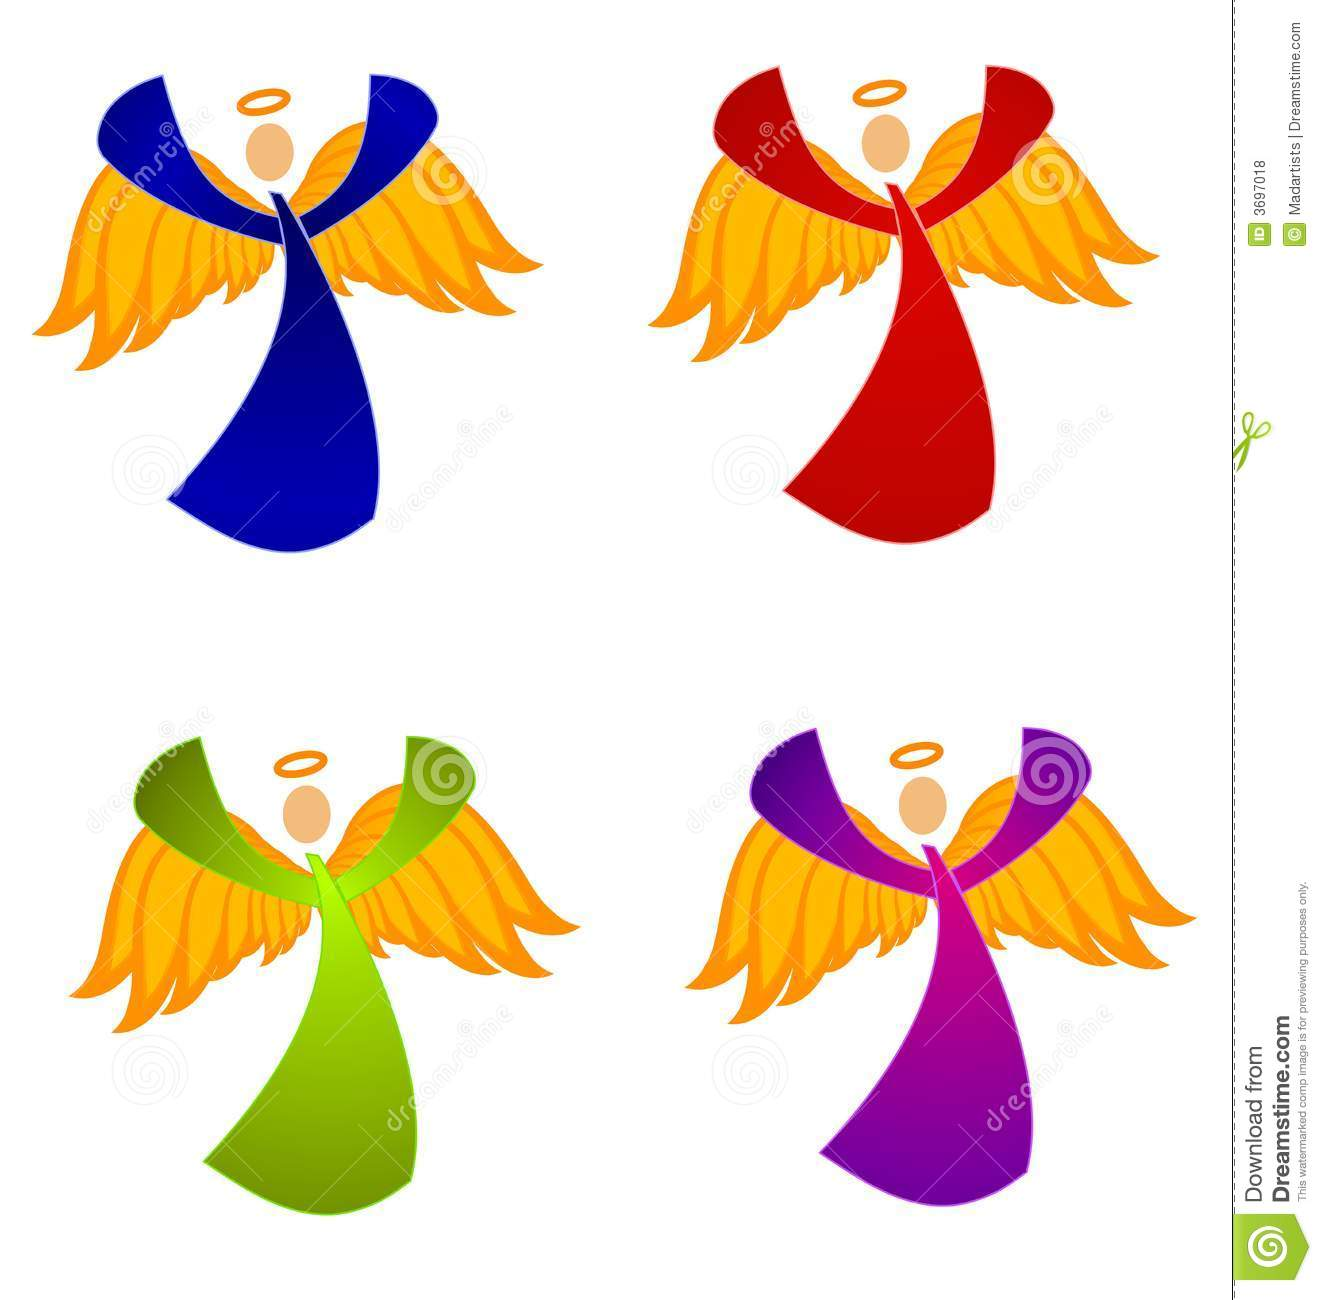 variety of christmas angels clip art stock illustration rh dreamstime com free clip art angels flying free clip art angels christian